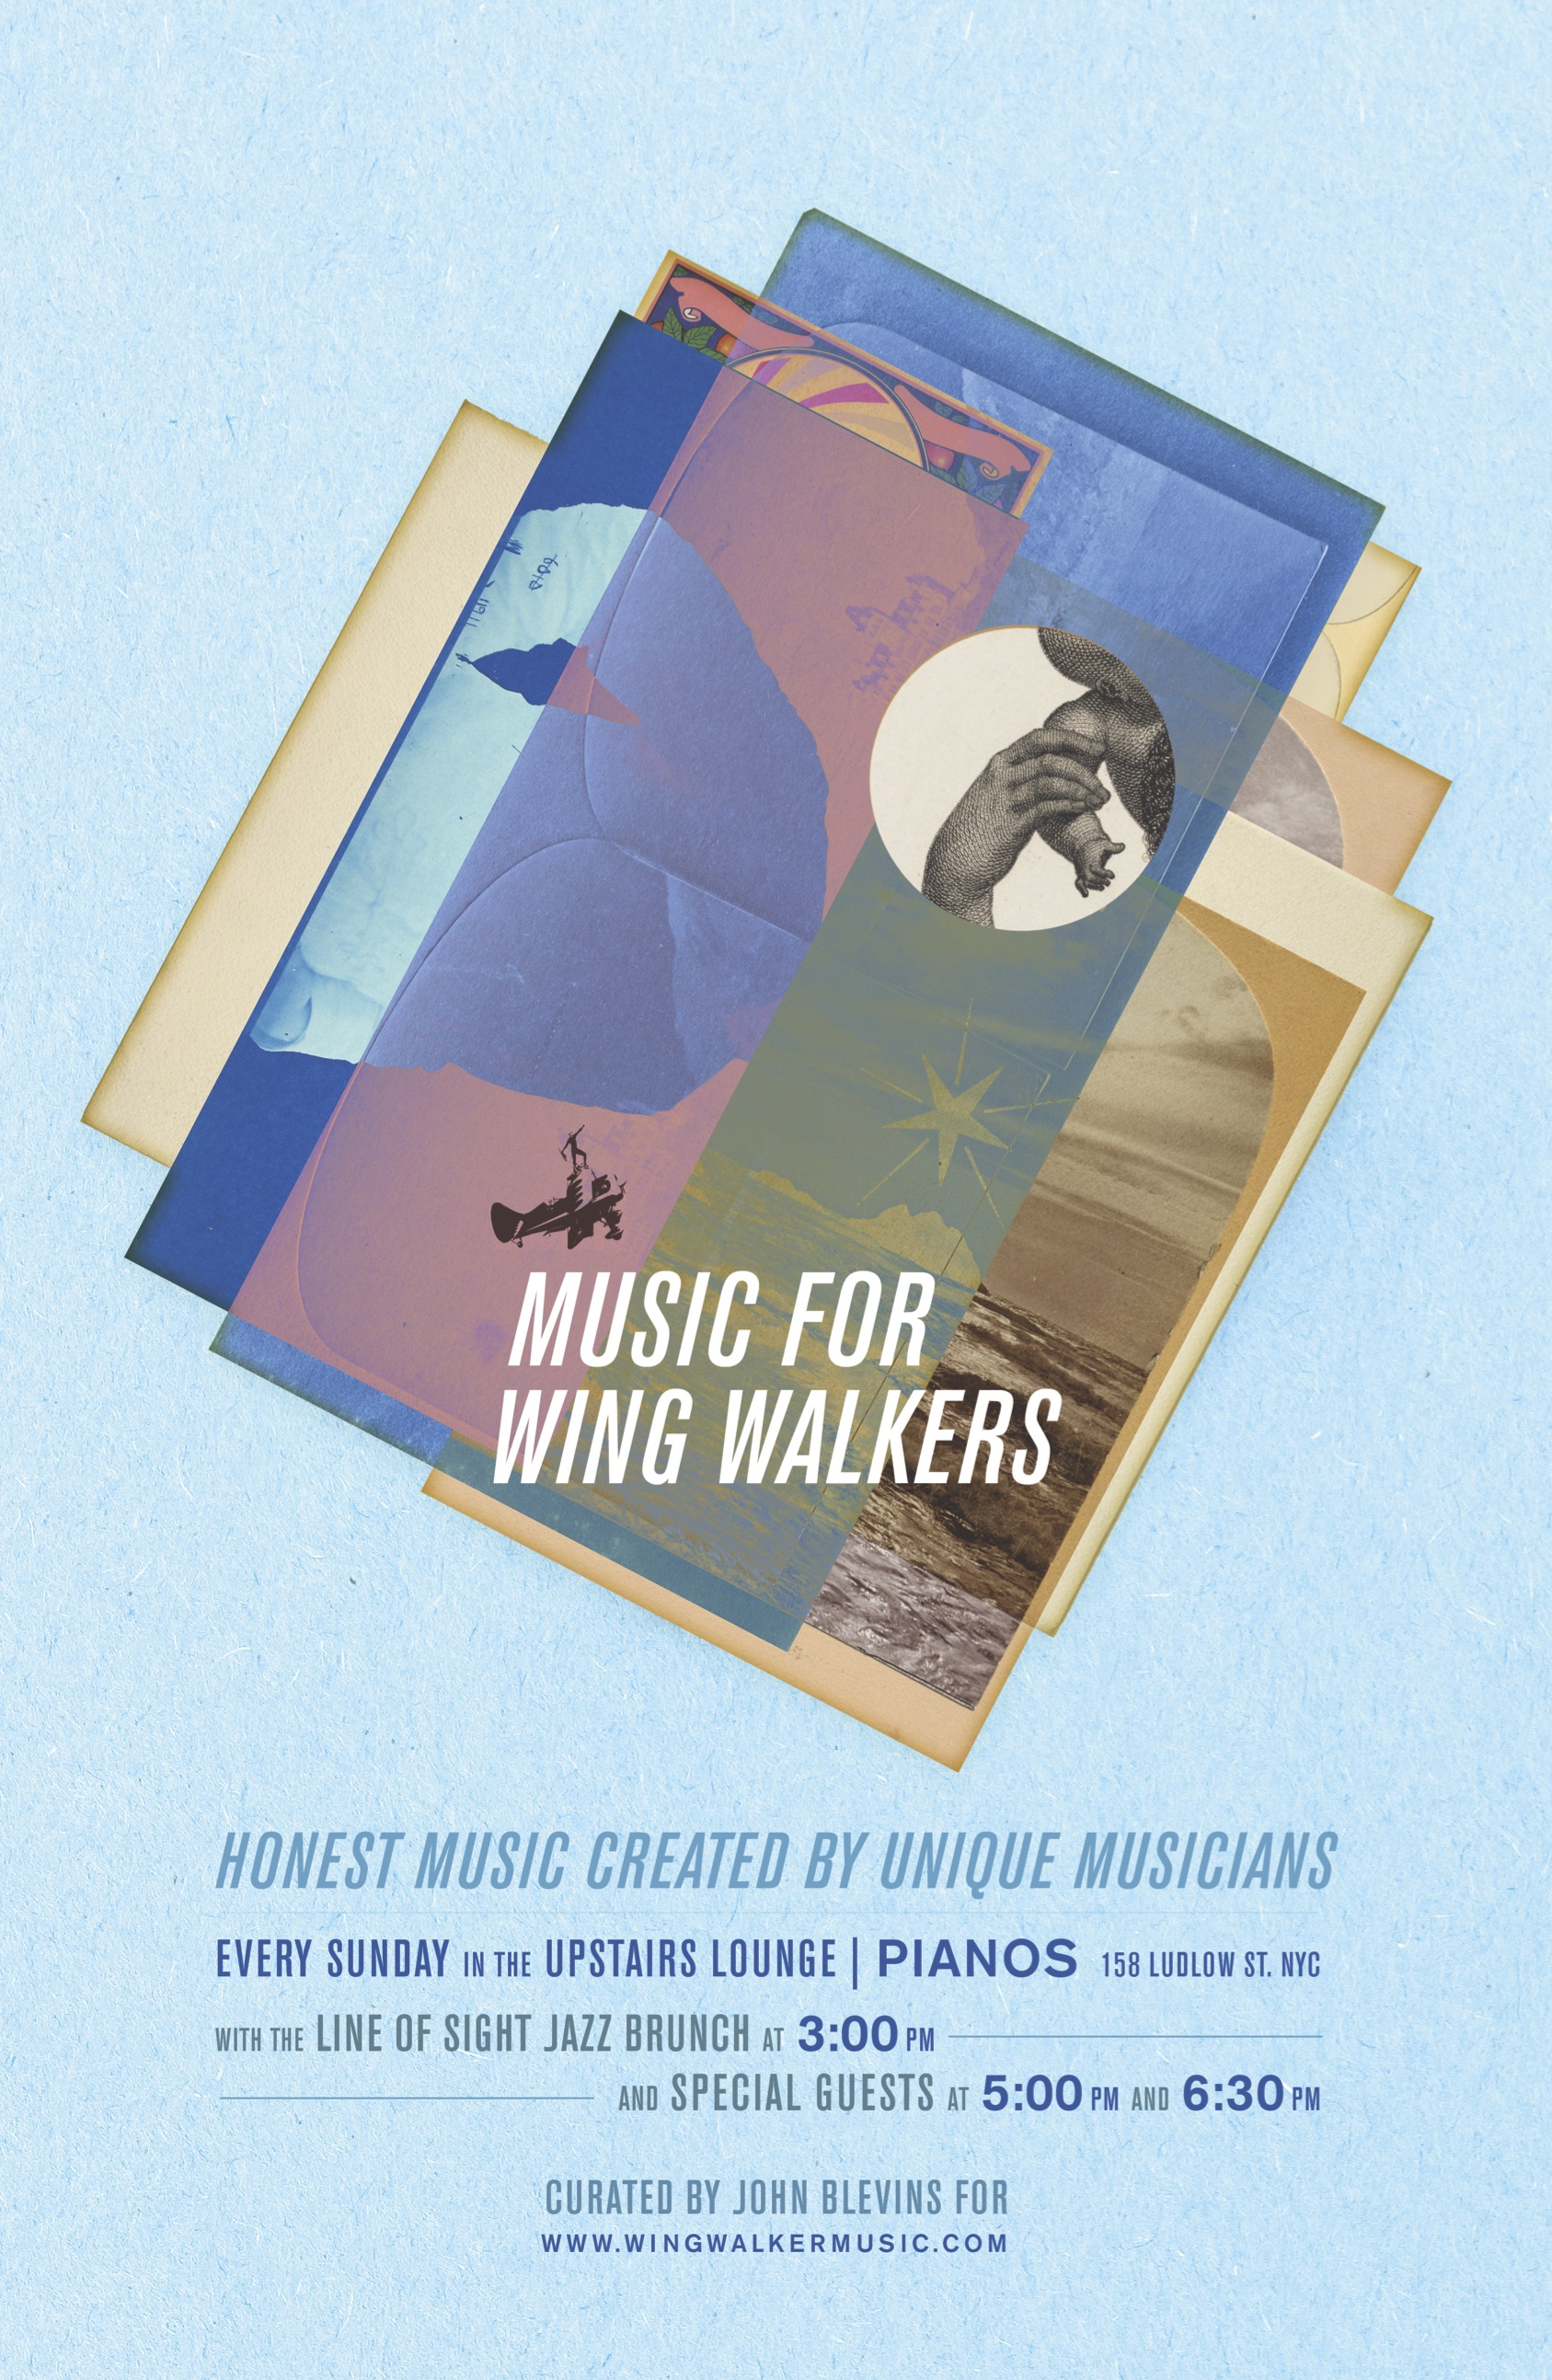 MUSIC_for_WING_WALKERS_poster.jpg